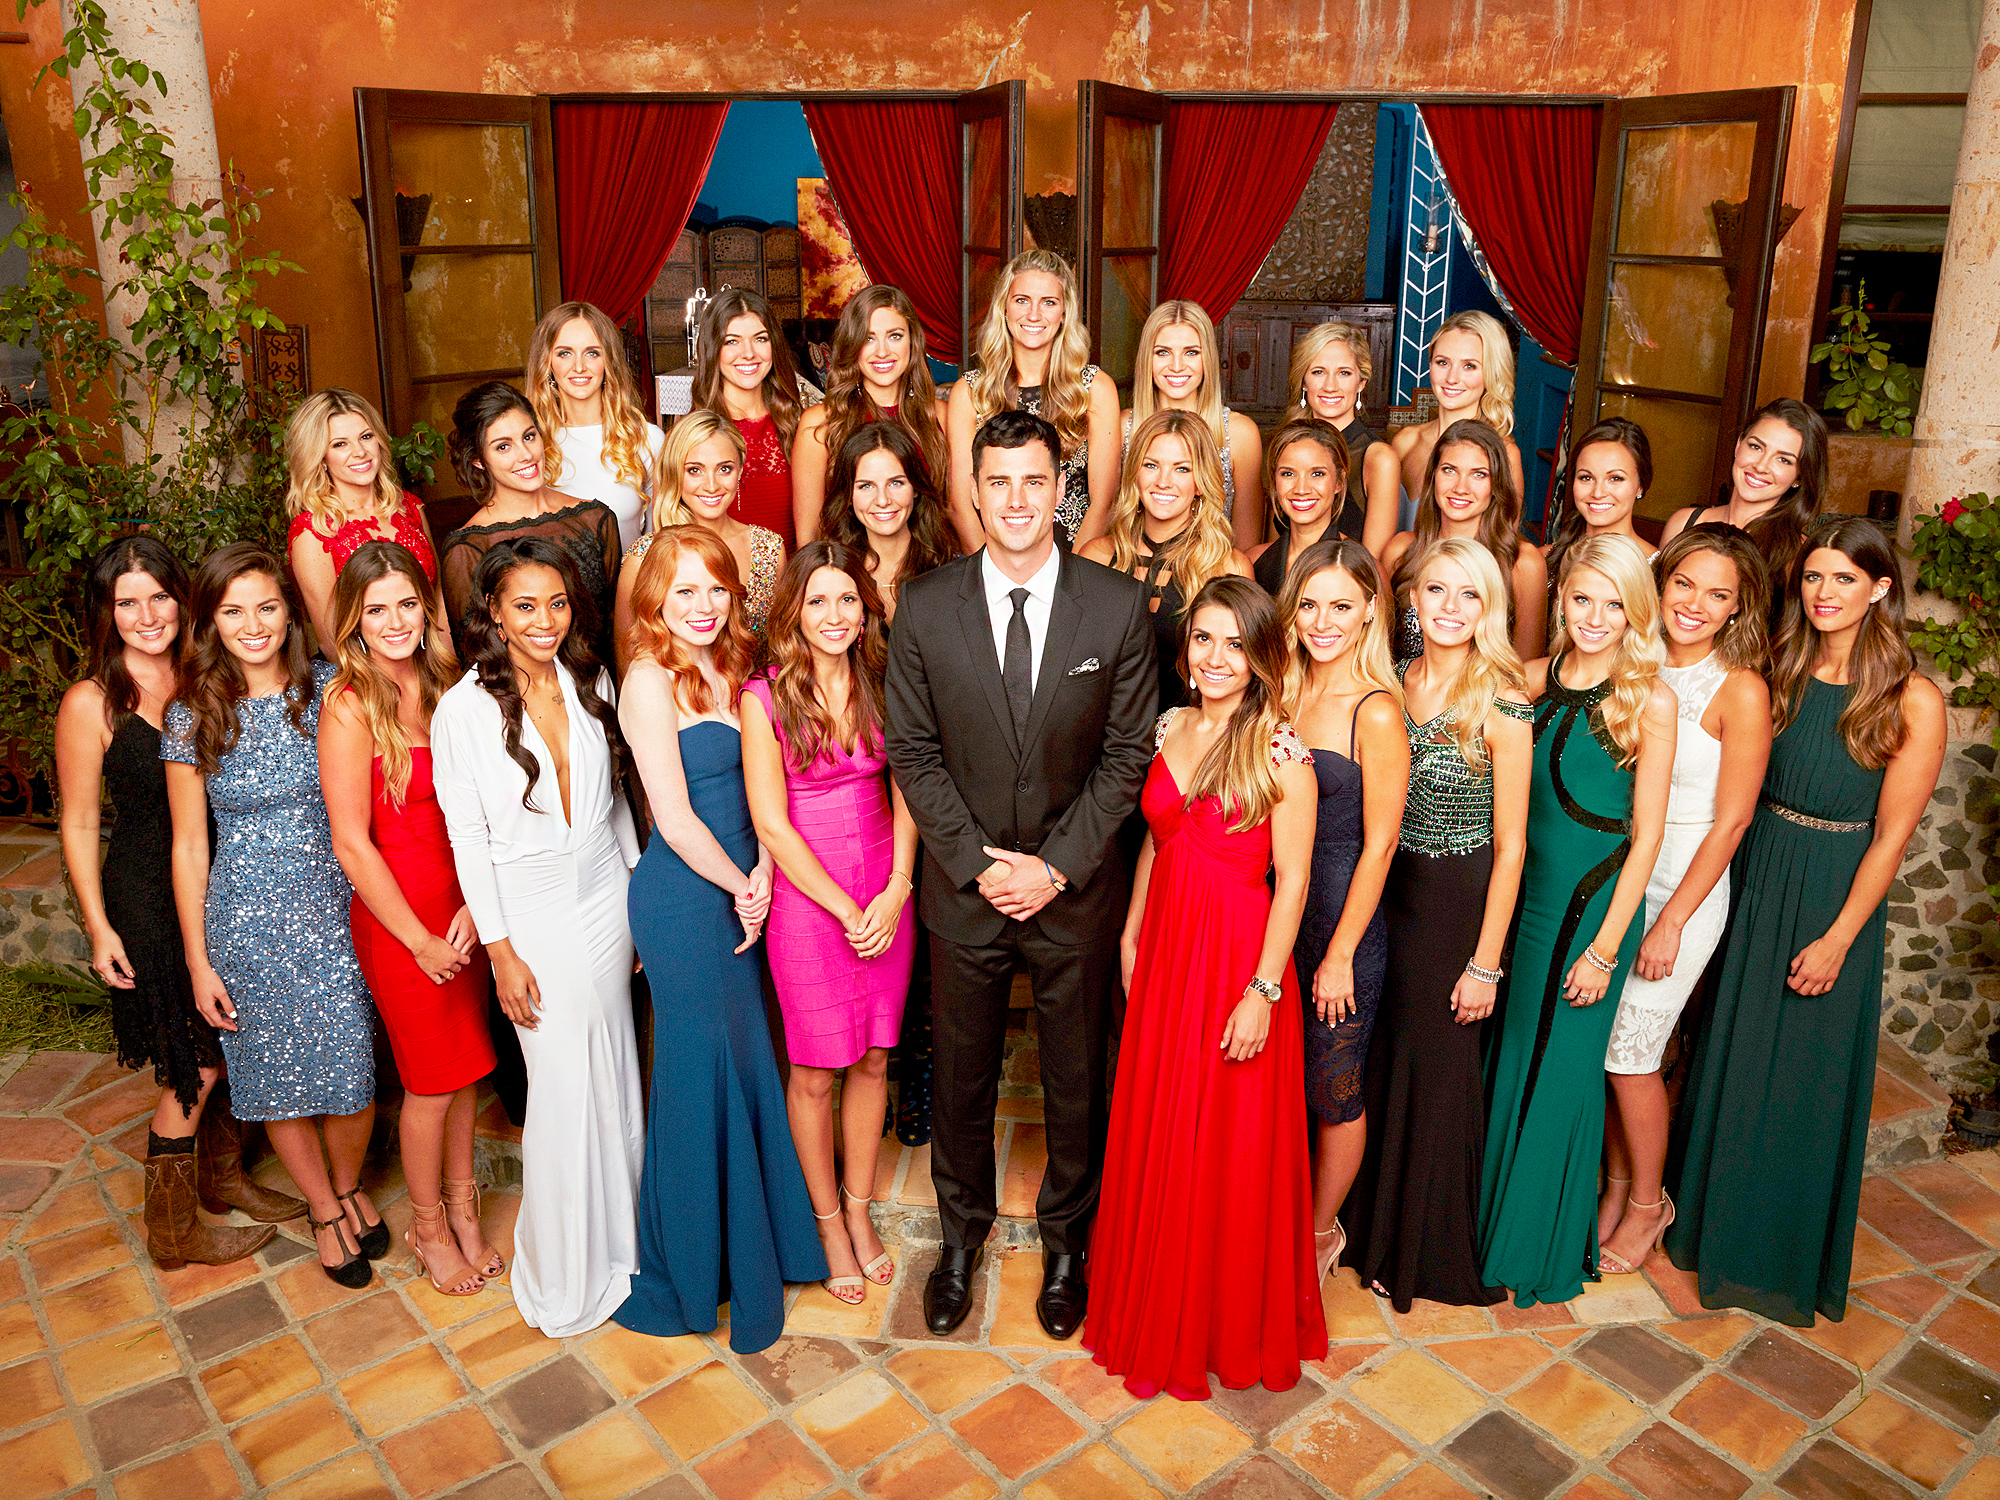 Ben Higgins and 'The Bachelor' cast.